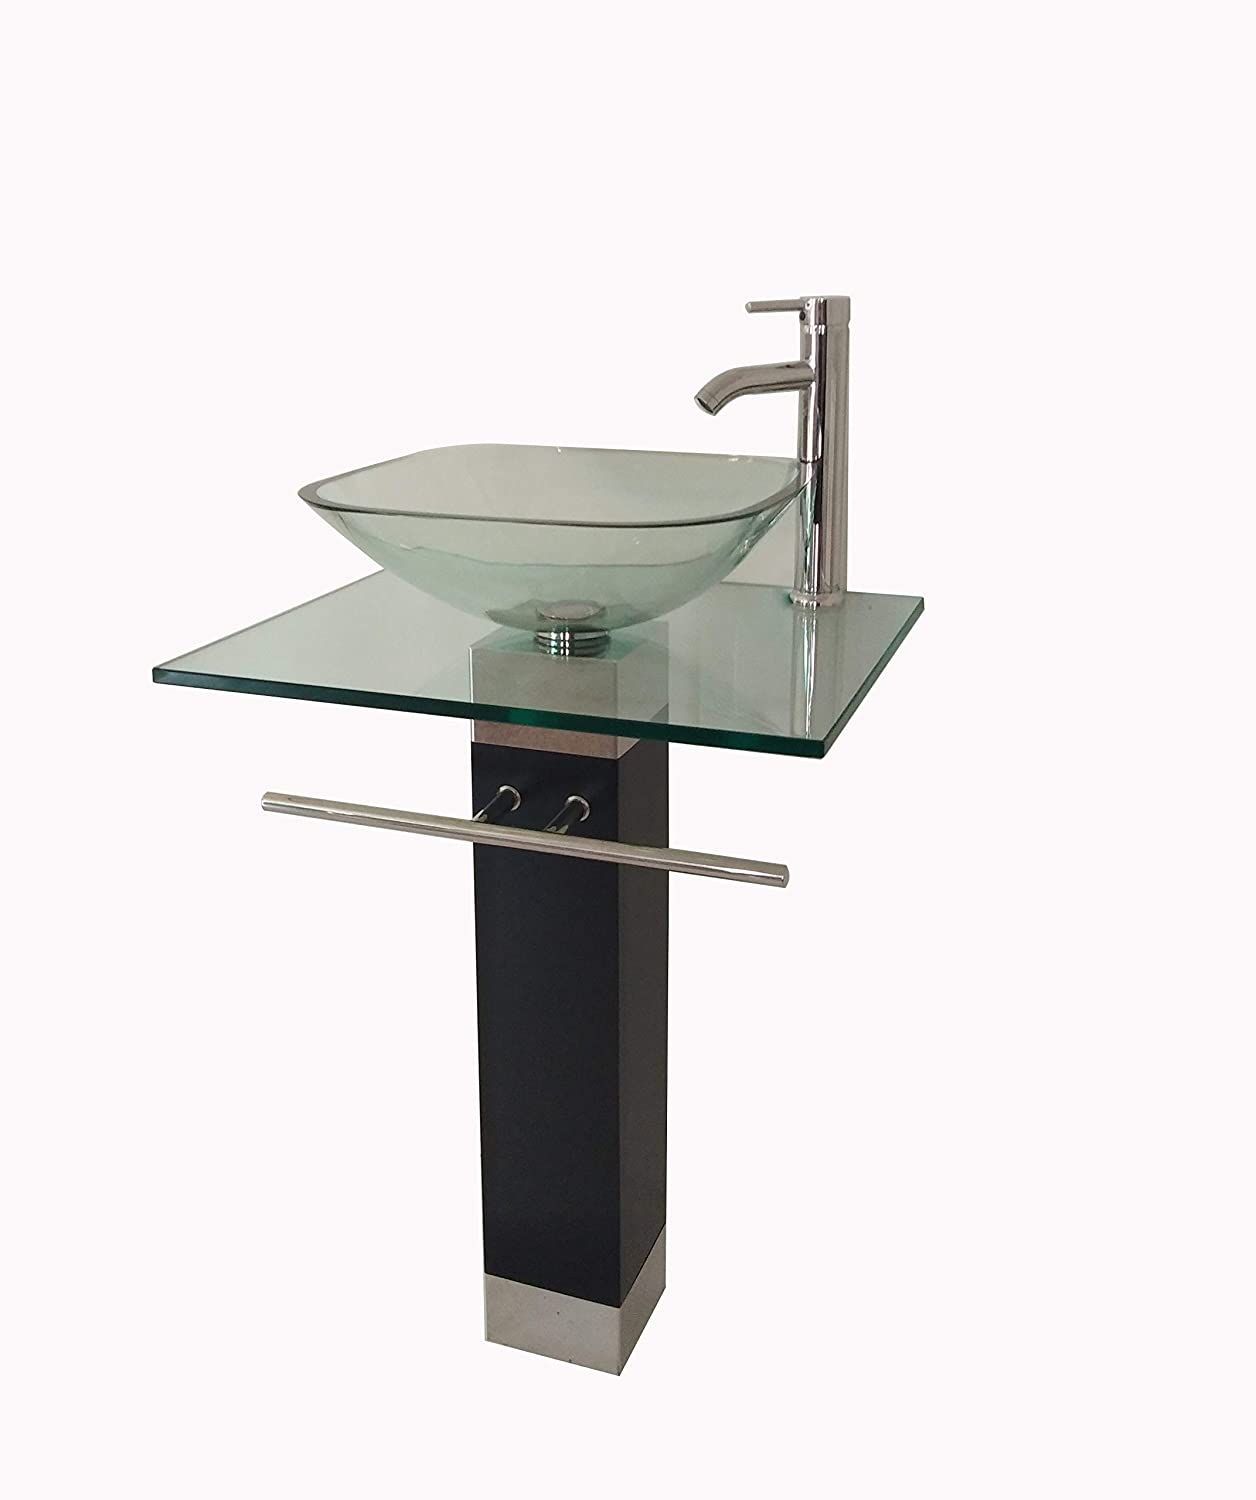 24 Bathroom Pedestal Vanity Glass Vessel Sink Set with Chrome Faucet Drain included BLACK